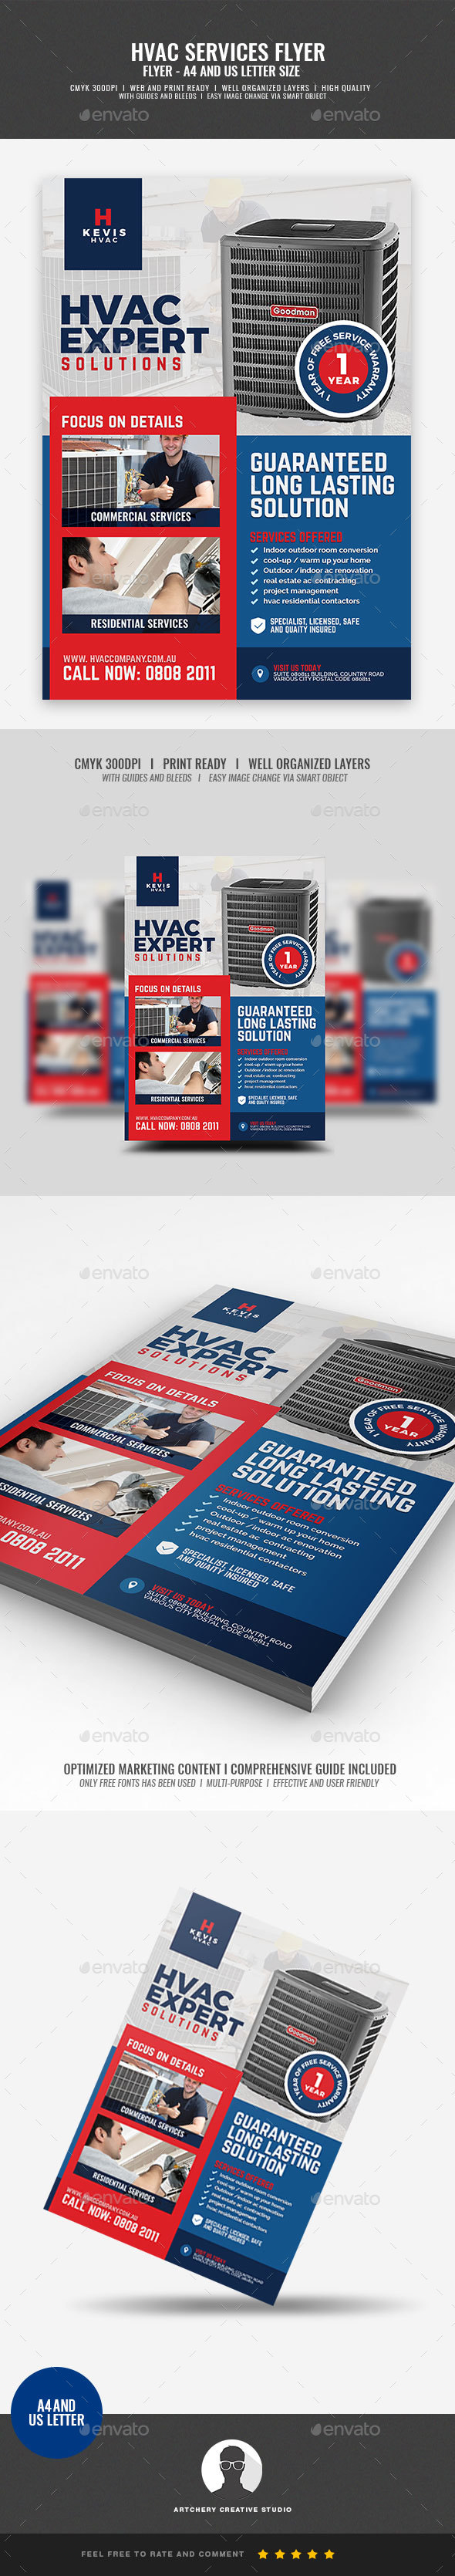 HVAC Installation and Repair Services Flyer - Corporate Flyers